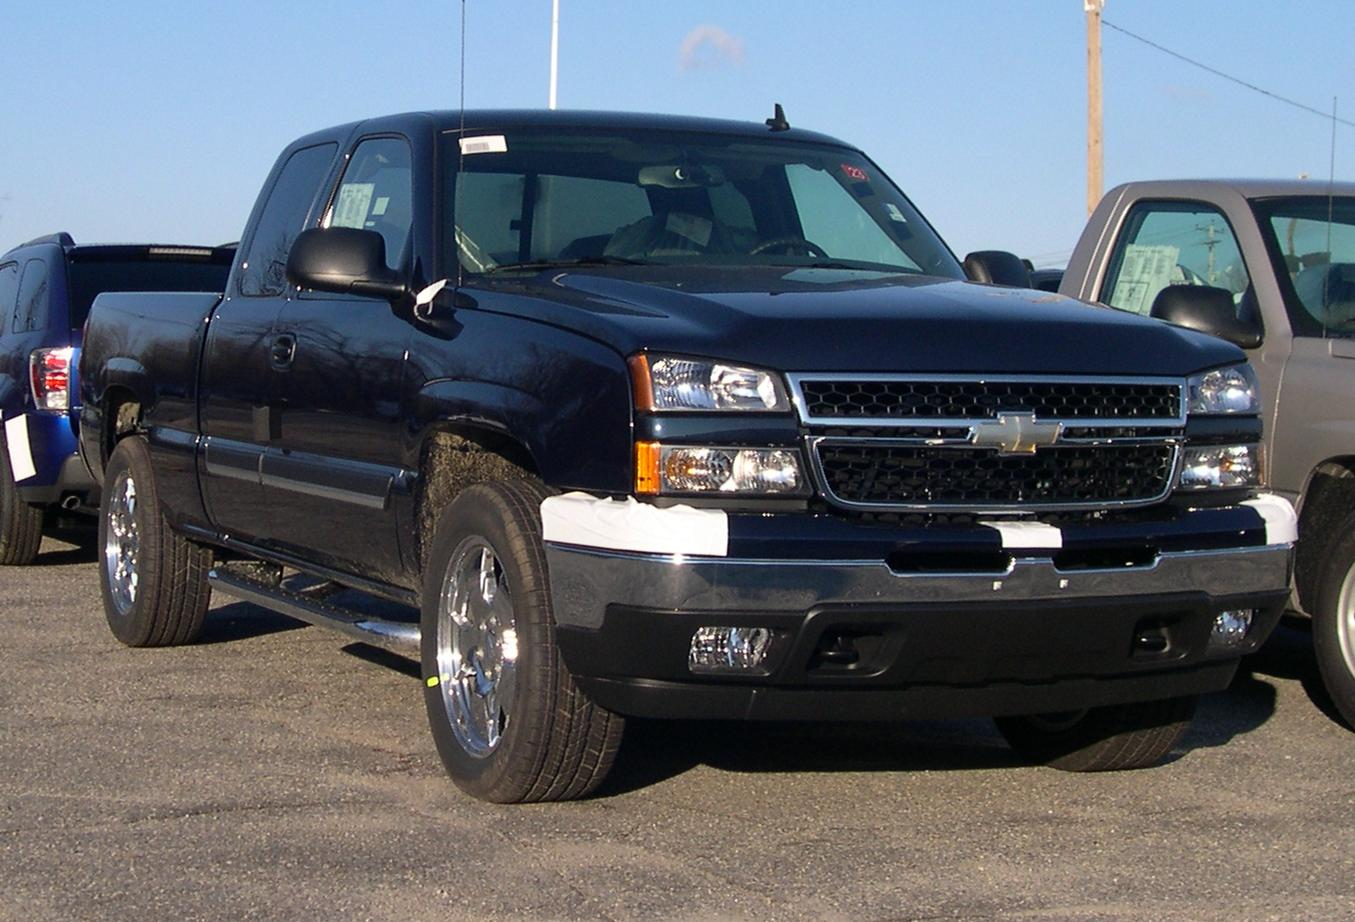 world automotive center chevrolet silverado high performance pickup truck built by chevrolet. Black Bedroom Furniture Sets. Home Design Ideas